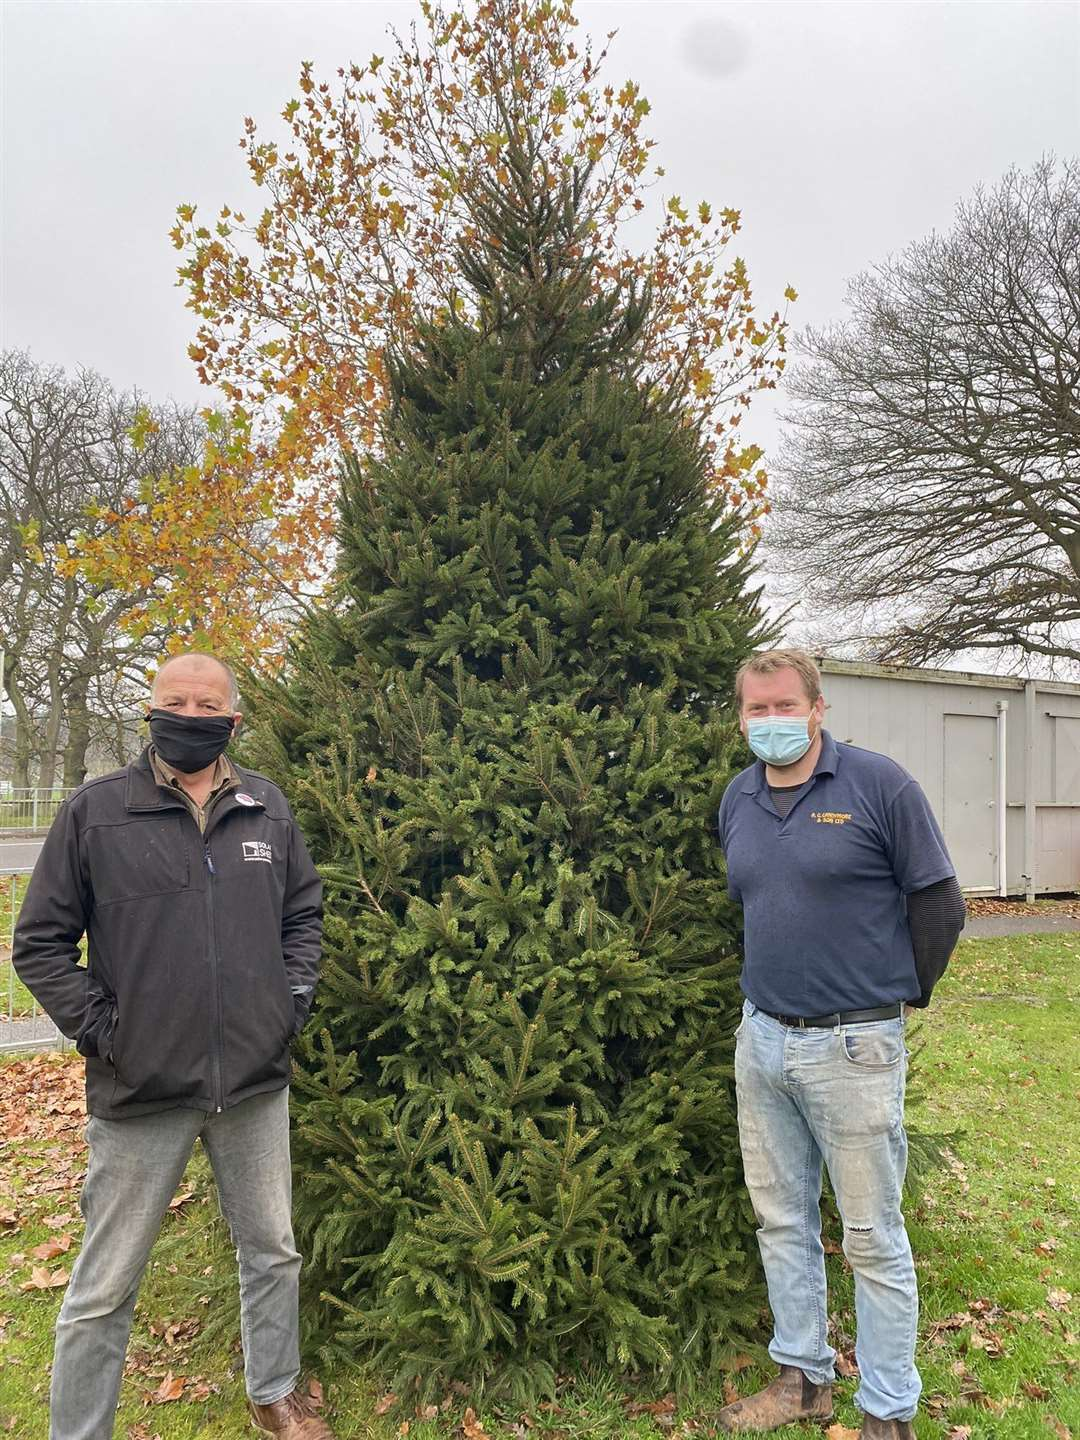 Edward Landymore and Kevin Holland pictured with the Queen's surprise Christmas tree which has enabled them to donate a Christmas tree to the Purfleet Trust as well as Lynn's QEH (43366924)